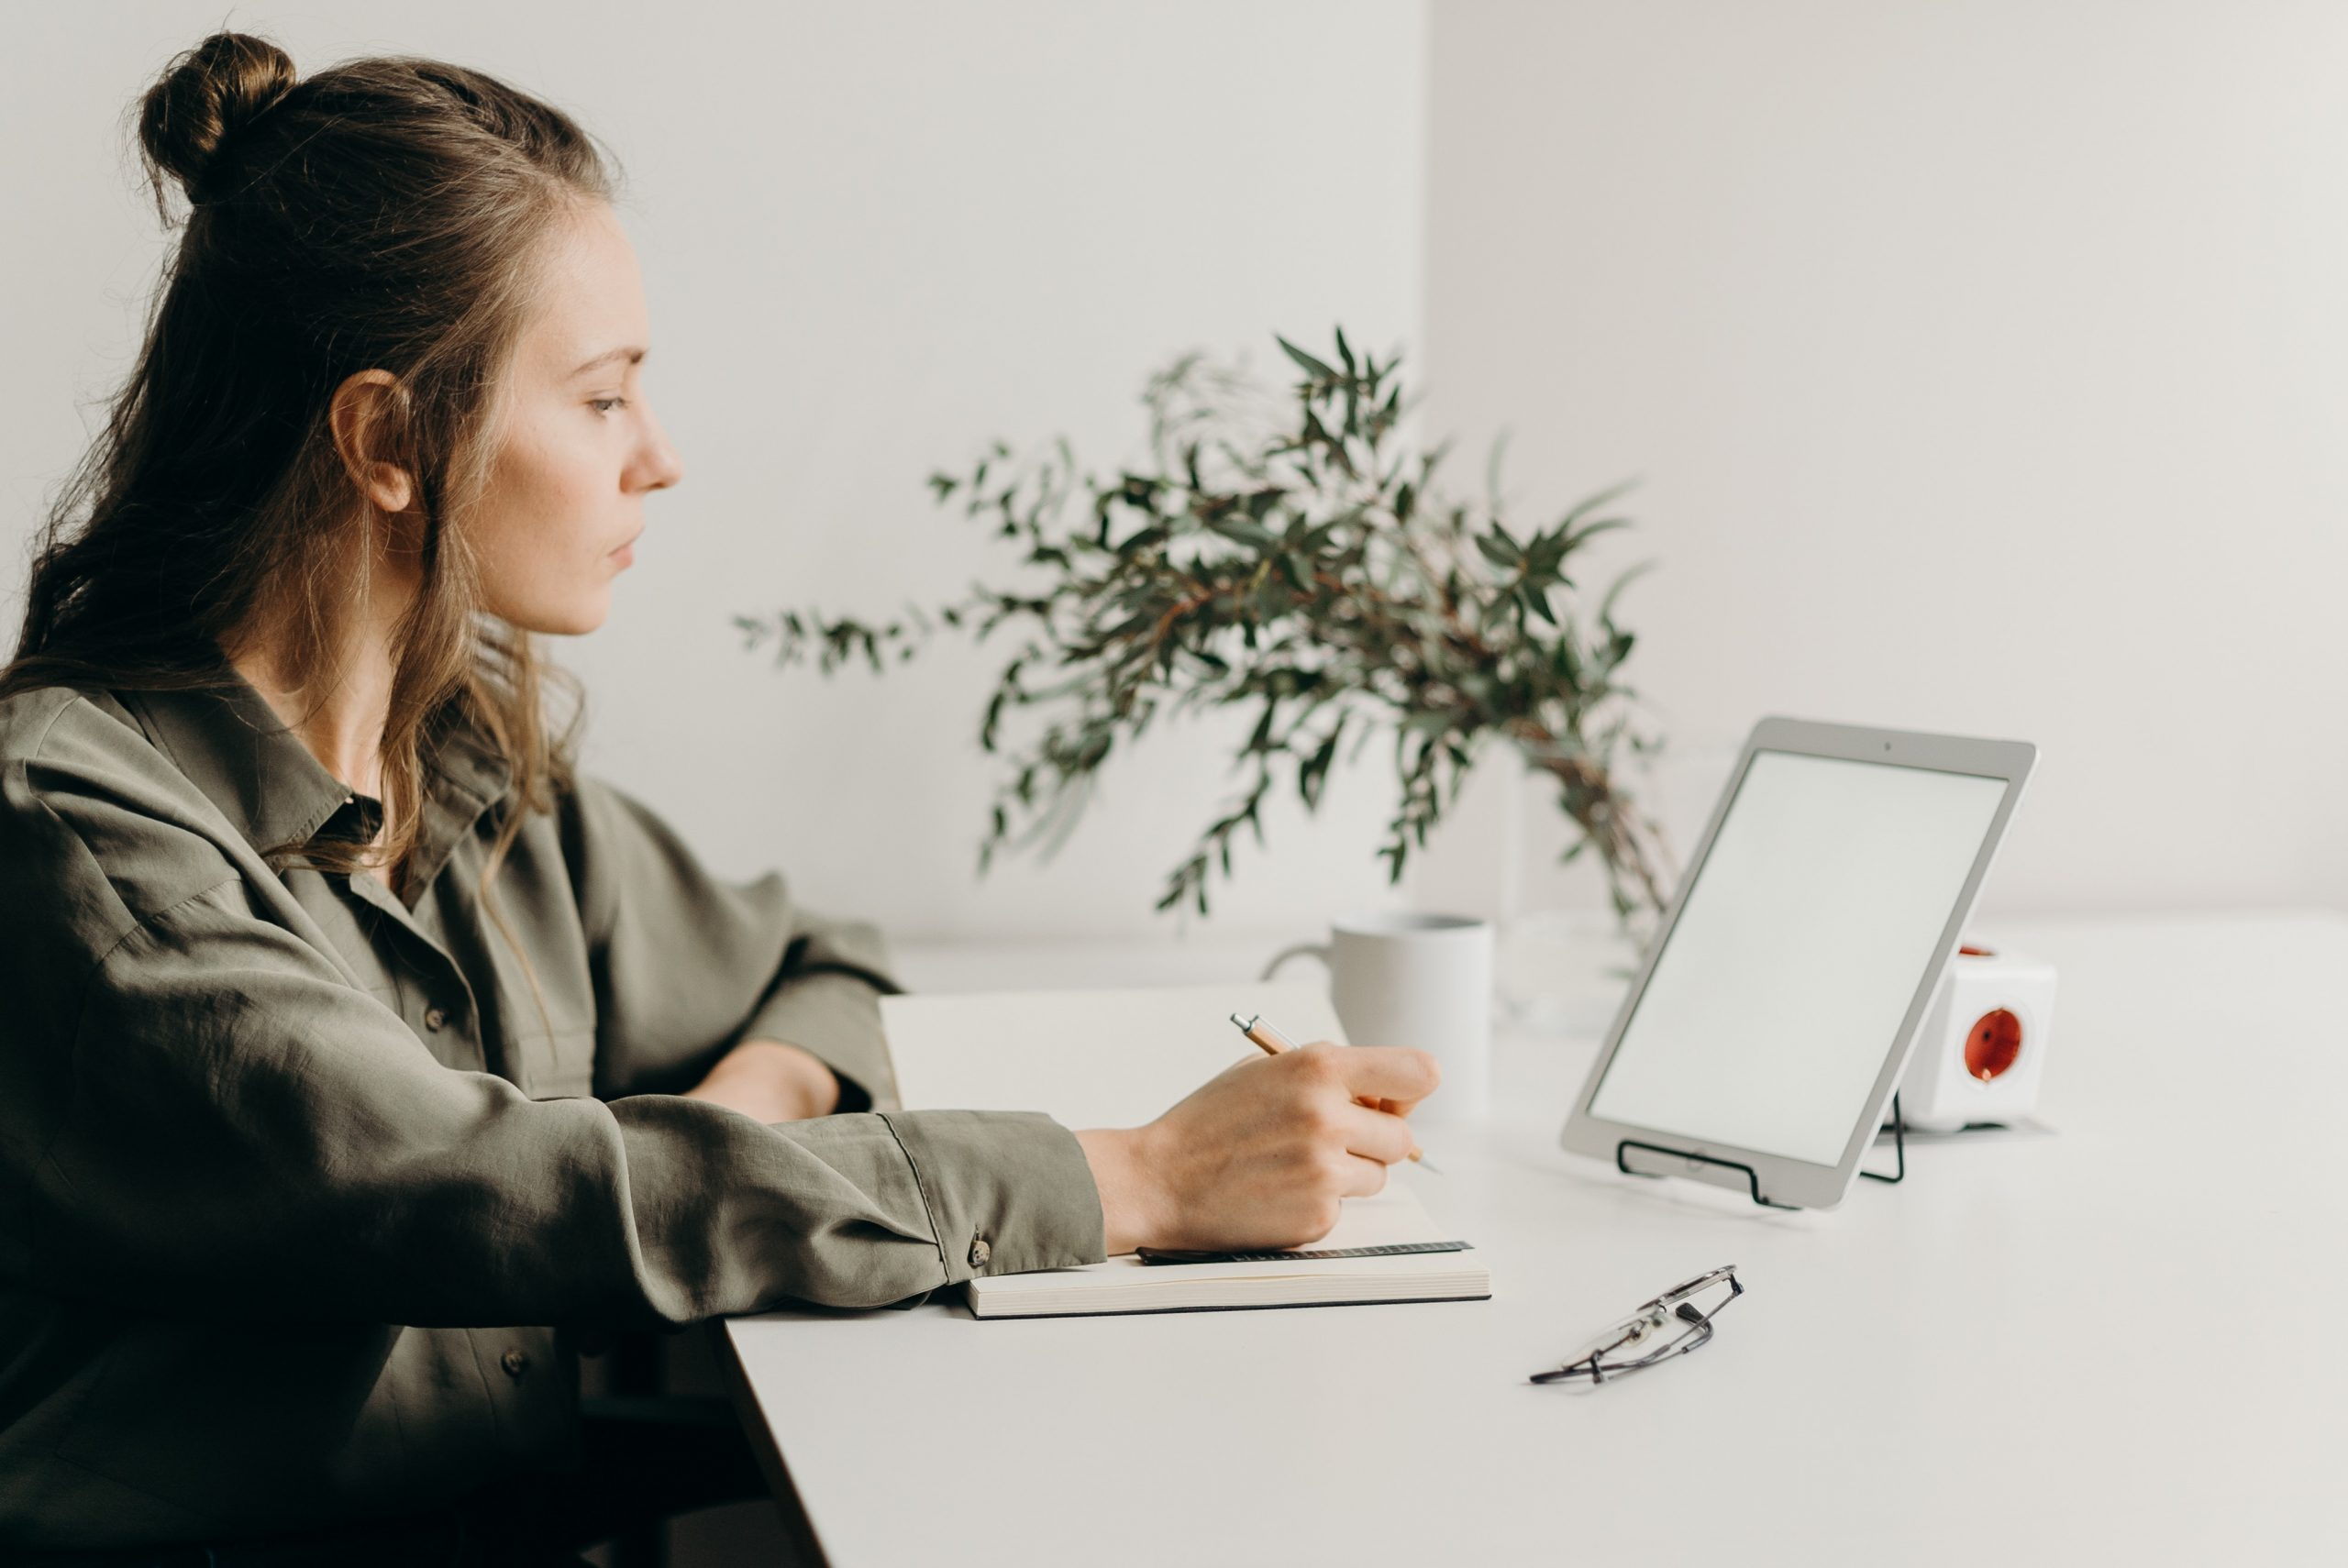 How To Balance a Full-Time Job and a Side Job